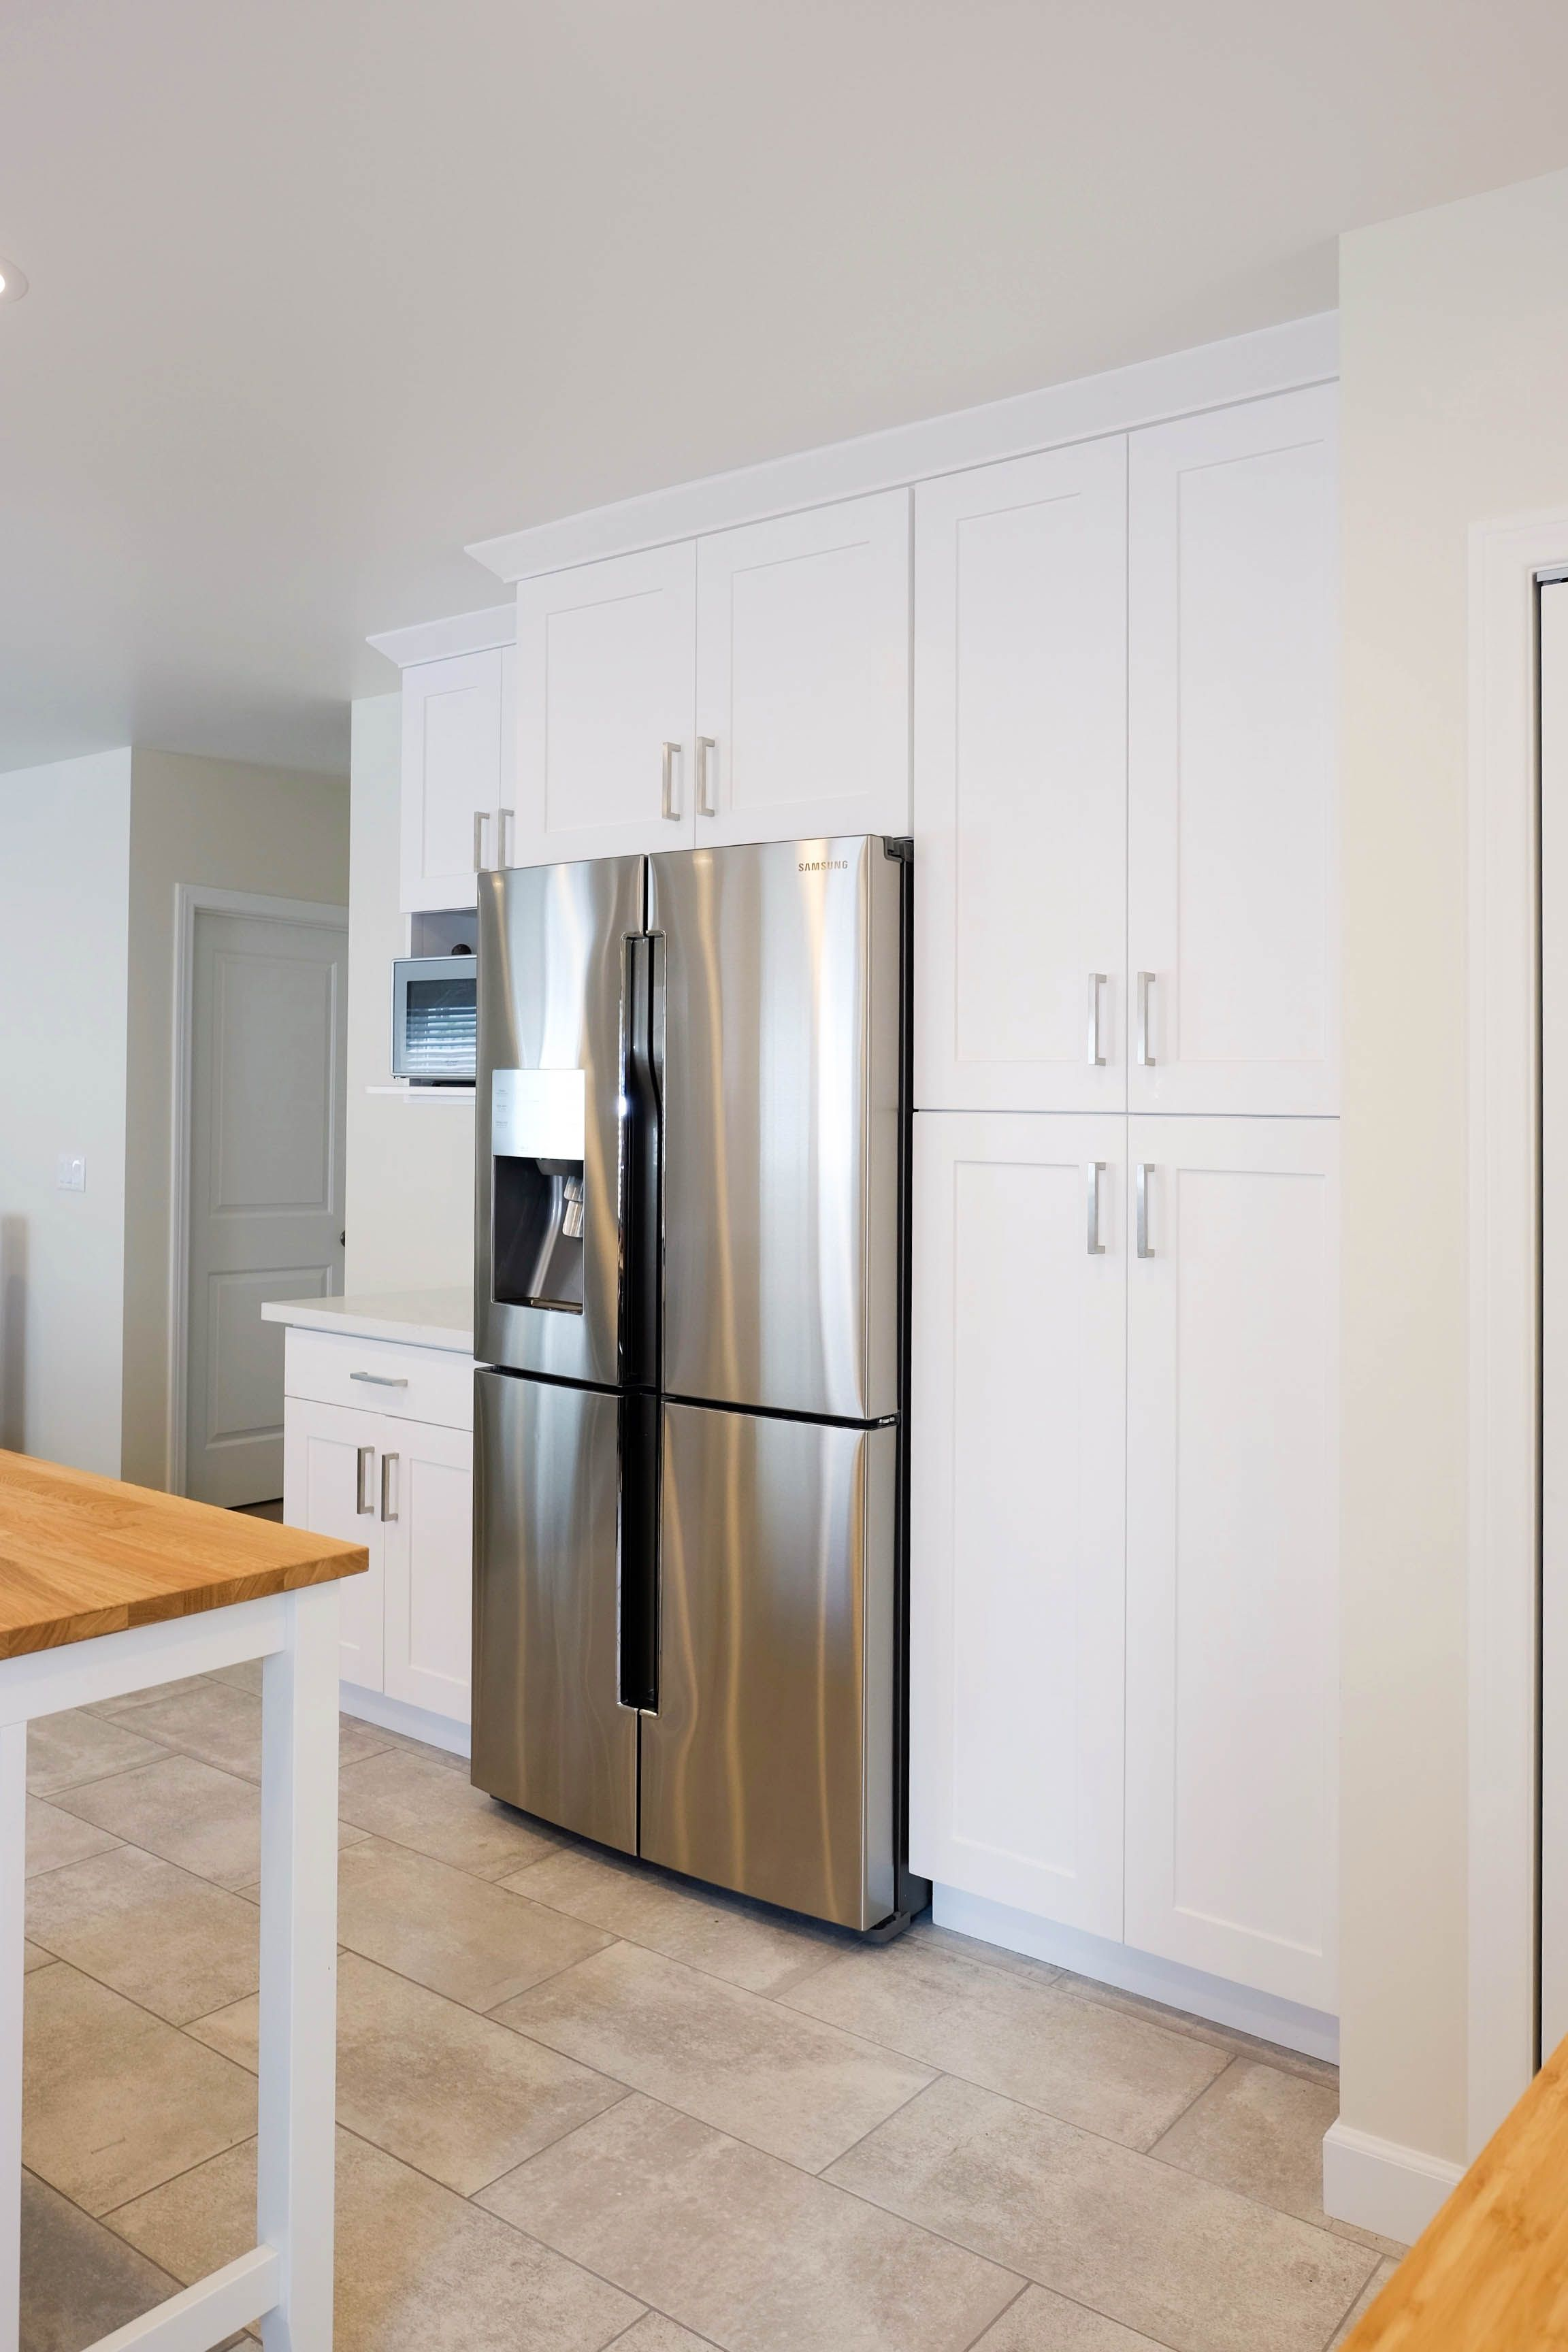 White And Grey Shaker Cabinets In A New Kitchen In Alhambra Ca Shaker Cabin Kitchen Cabinet Manufacturers Rta Kitchen Cabinets Kitchen Cabinets In Bathroom